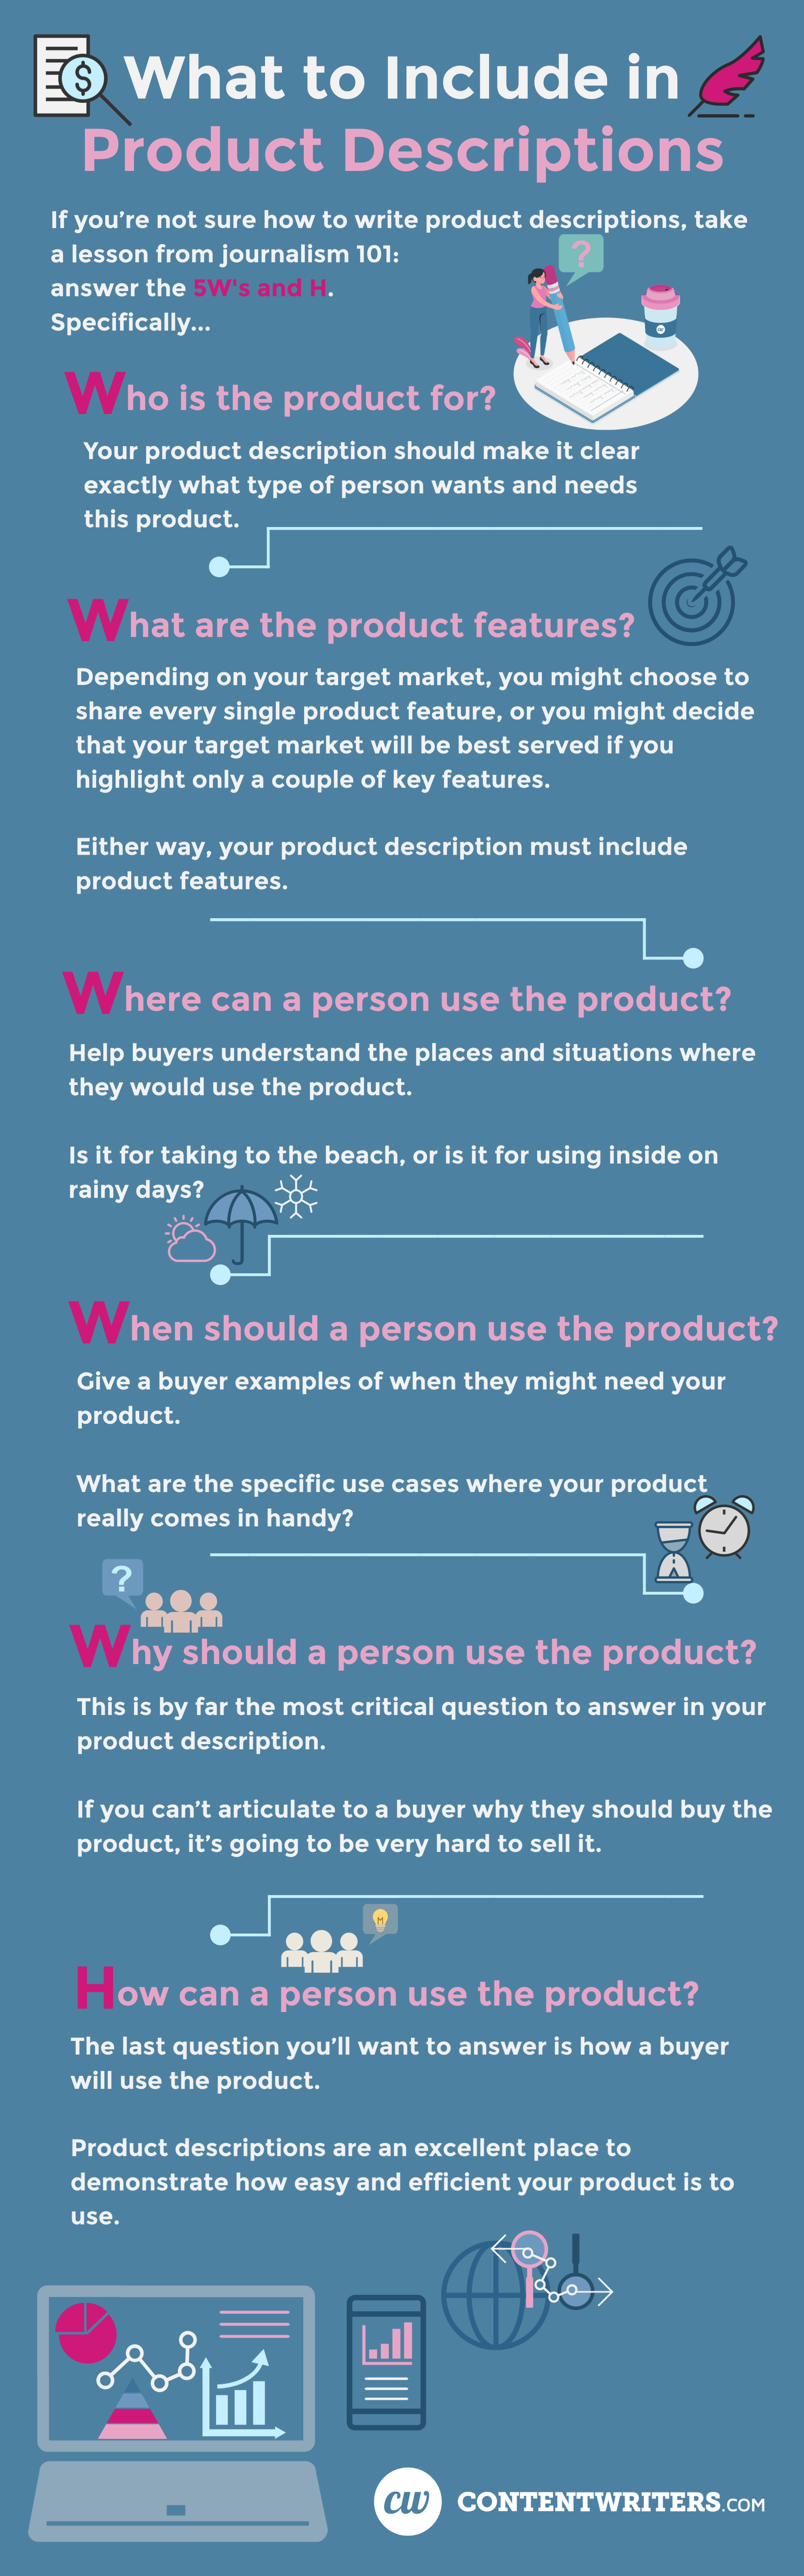 What to Include in product descriptions ContentWriters  What to Include in Product Description If you're not sure how to write product descriptions, take a lesson from journalism 101: answer the 5Ws and H.  Specifically:  Who is the product for? Your product description should make it clear exactly what type of person wants and needs this product. What are the product features?   Depending on your target market, you might choose to share every single product feature, or you might decide that your target market will be best served if you highlight only a couple of key features. Either way, your product description must include product features.  Where can a person use the product? Help buyers understand the places and situations where they would use the product. Is it for taking to the beach, or is it for using inside on rainy days?  When should a person use the product? Give a buyer examples of when they might need your product. What are the specific use cases where your product really comes in handy?  Why should a person buy the product? This is by far the most critical question to answer in your product description. If you can't articulate to a buyer why they should buy the product, it's going to be very hard to sell it.   How can a person use the product? The last question you'll want to answer is how a buyer will use the product. Product descriptions are an excellent place to demonstrate how easy and efficient your product is to use.